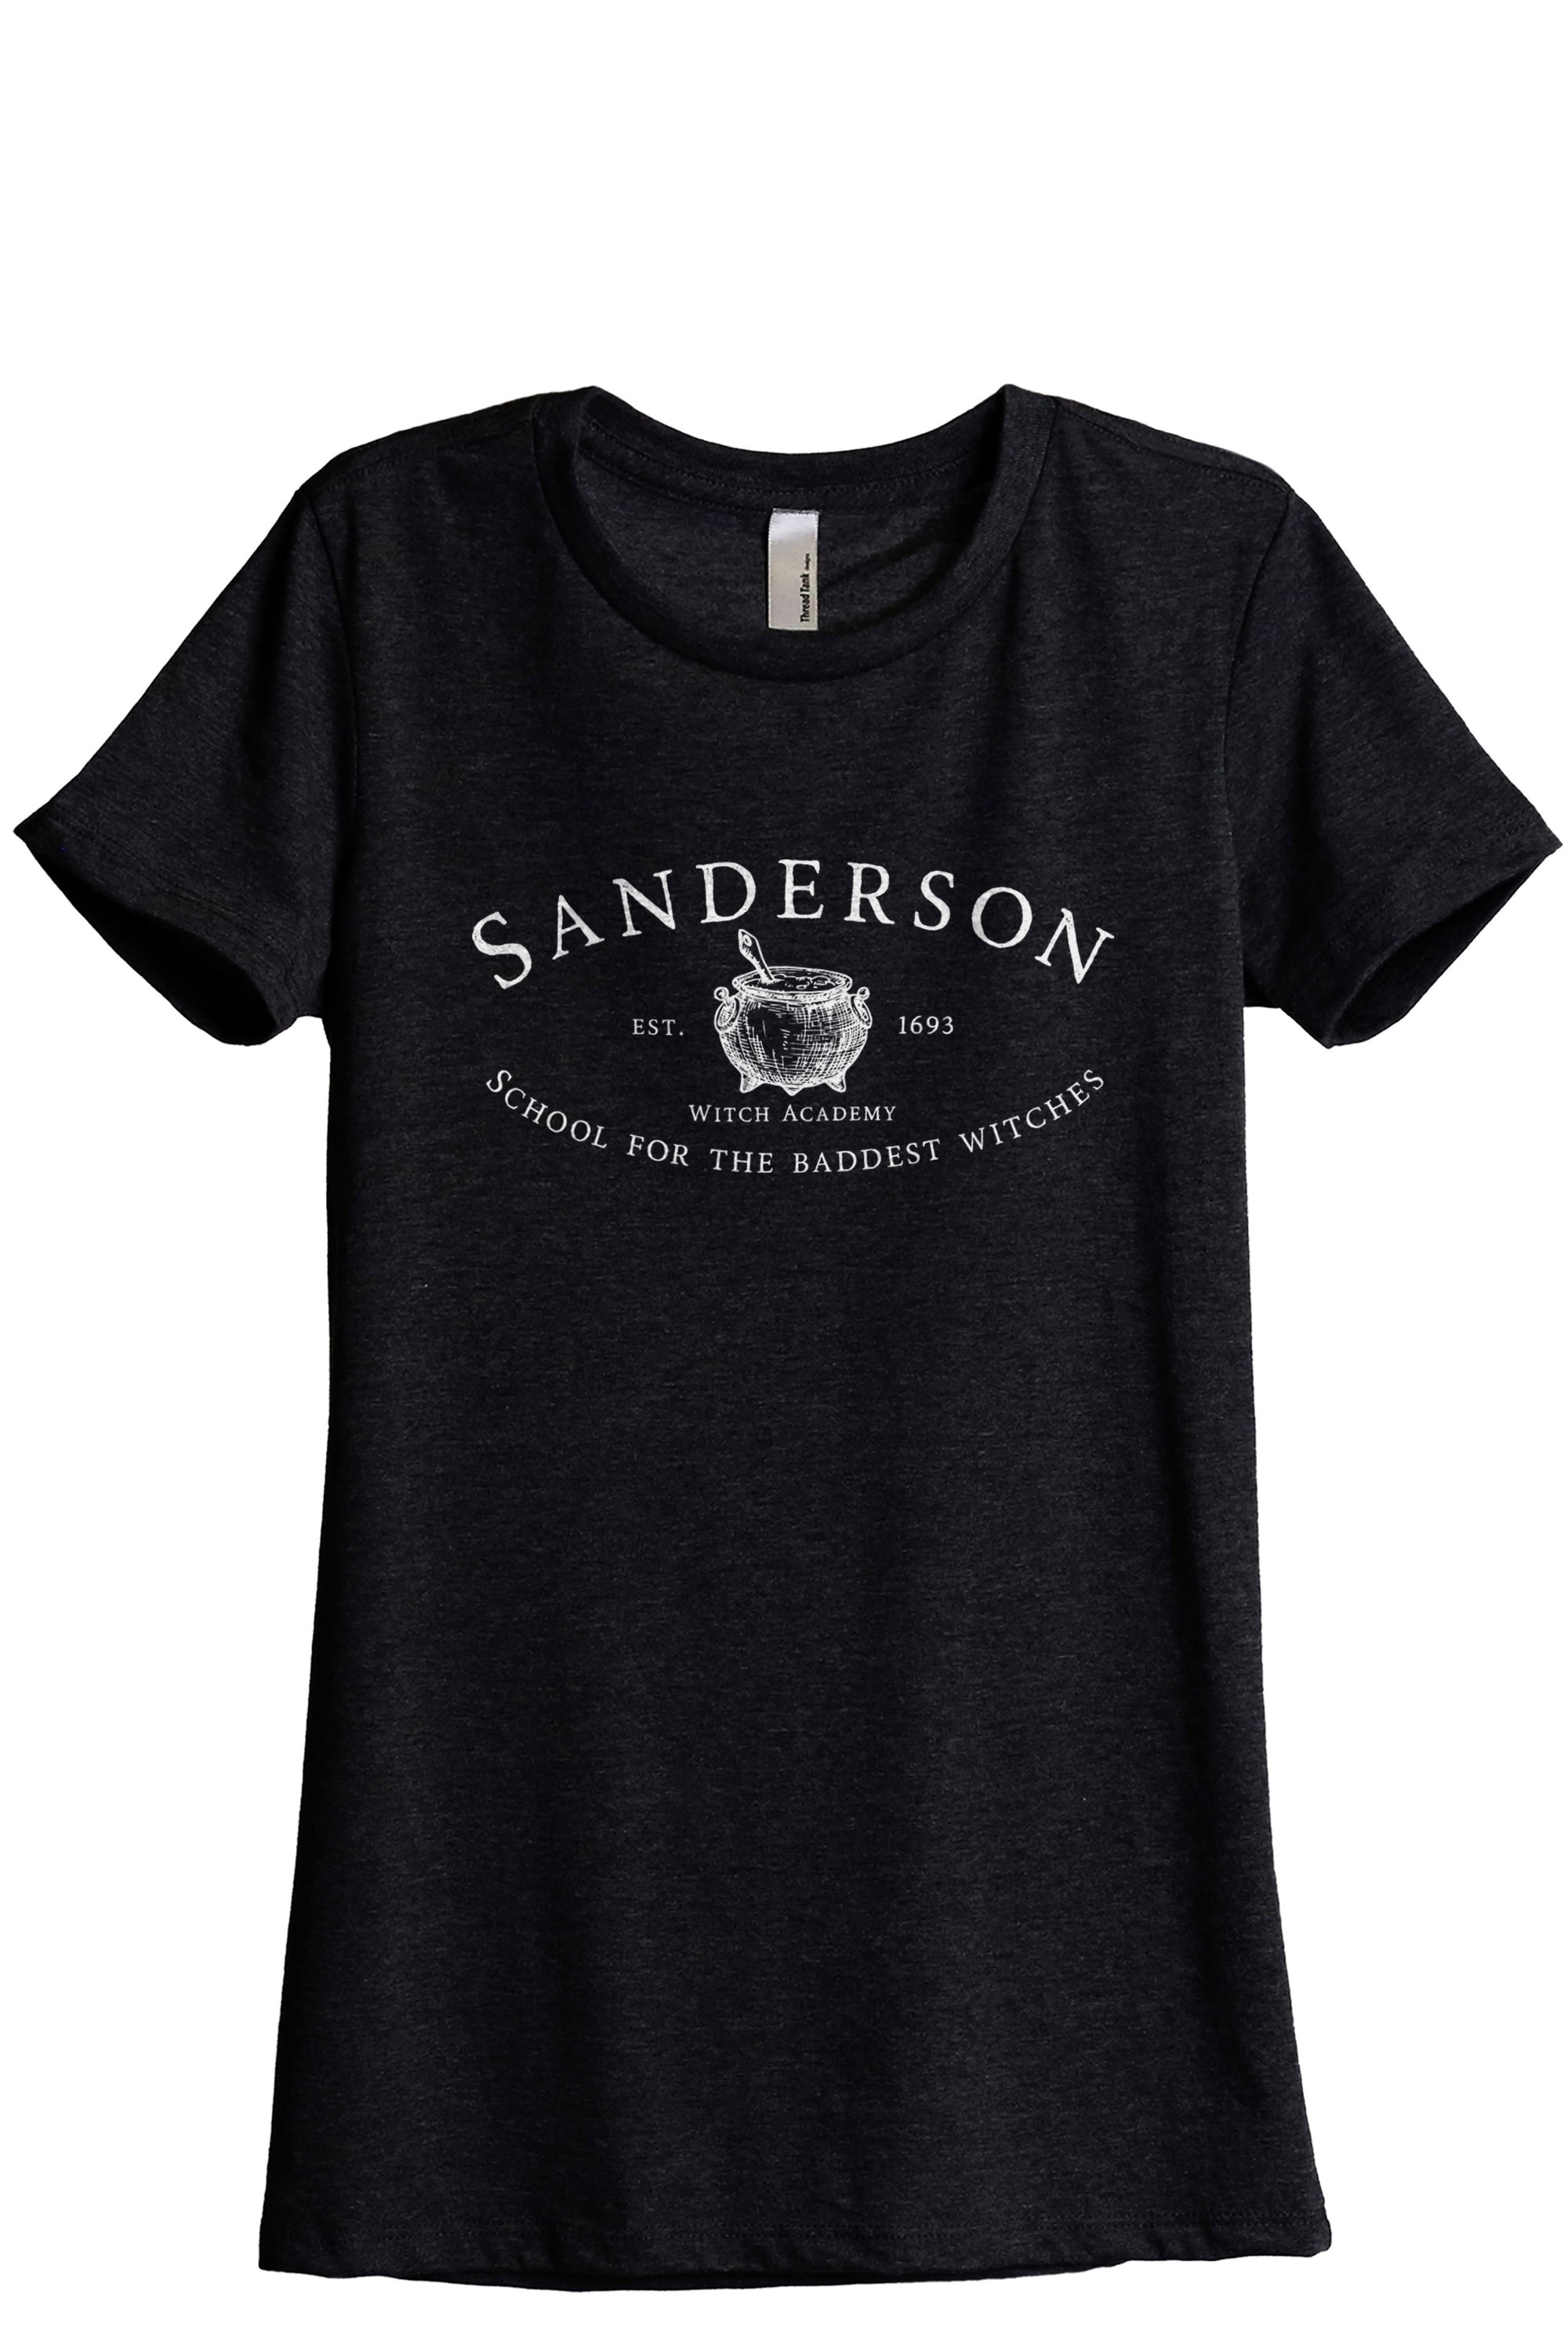 Sanderson Witch Academy Women's Relaxed Crewneck T-Shirt Top Tee Heather Black Grey